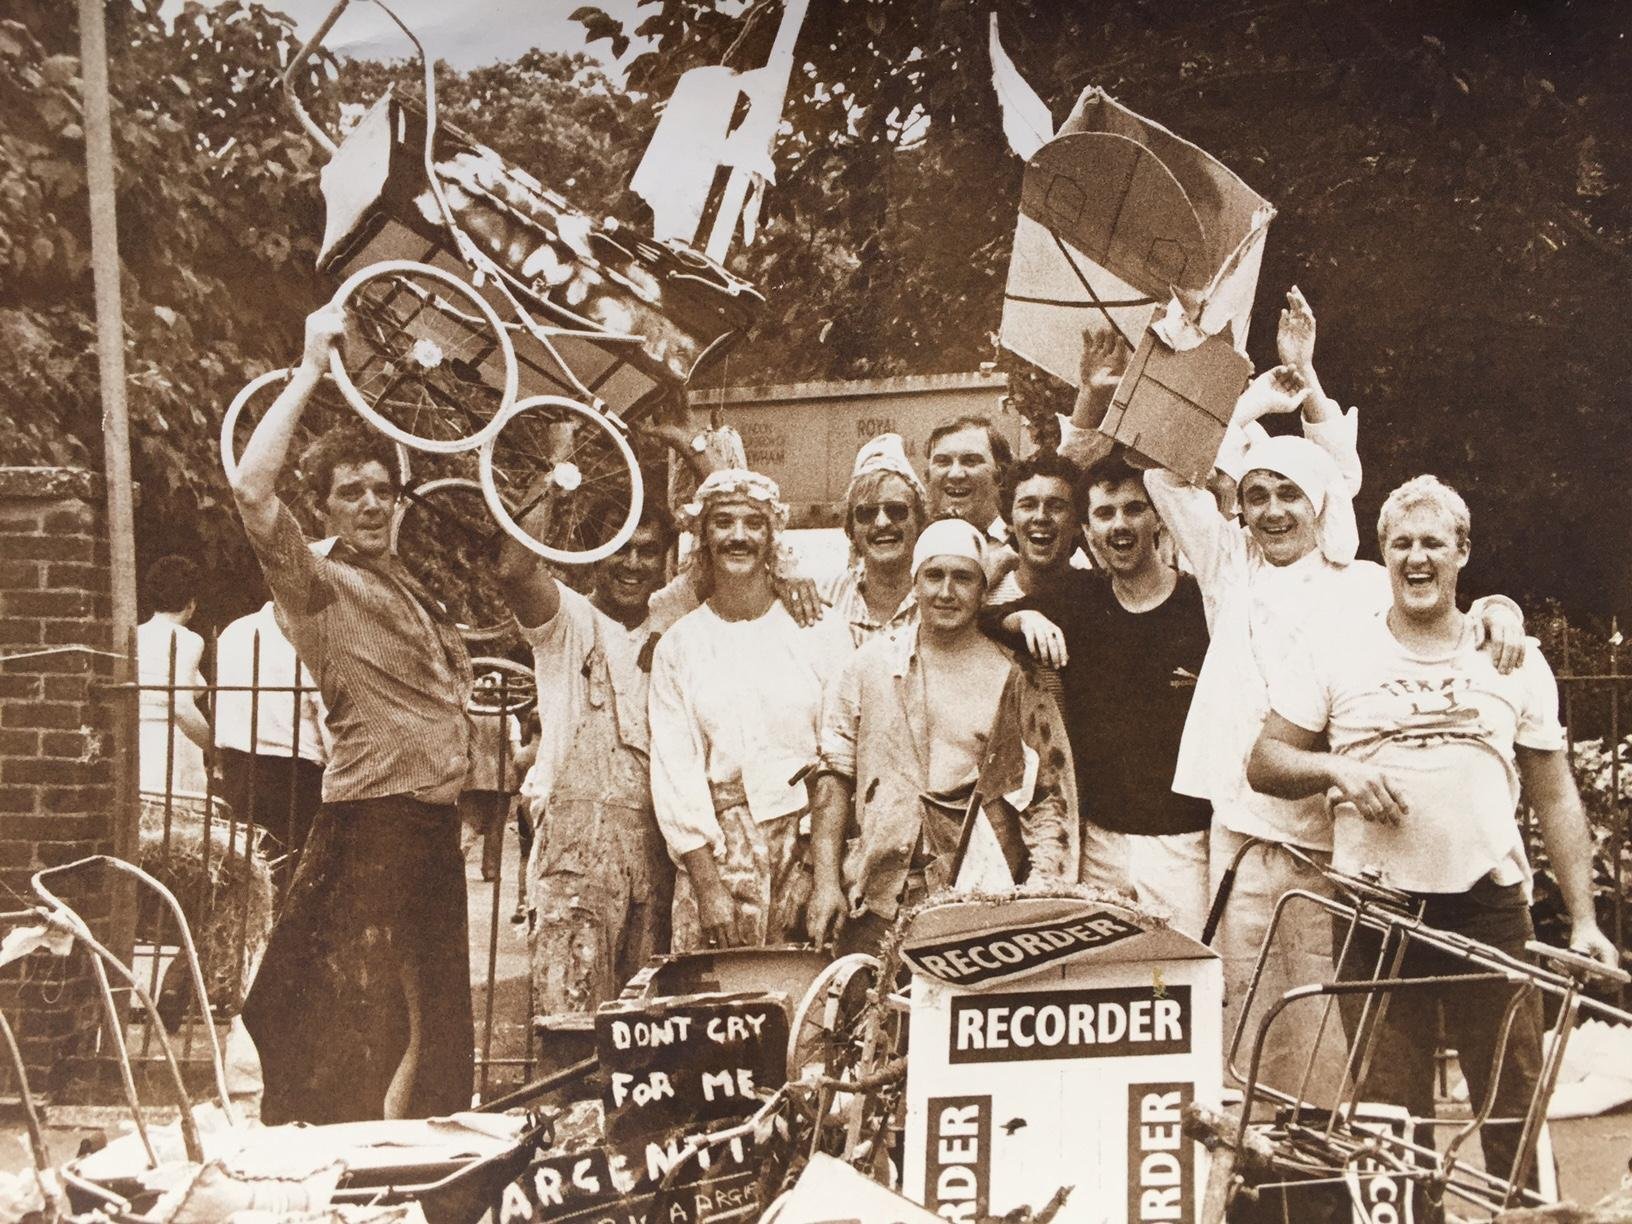 Group of men smiling, wearing costumes. One is waving a pram in the air.